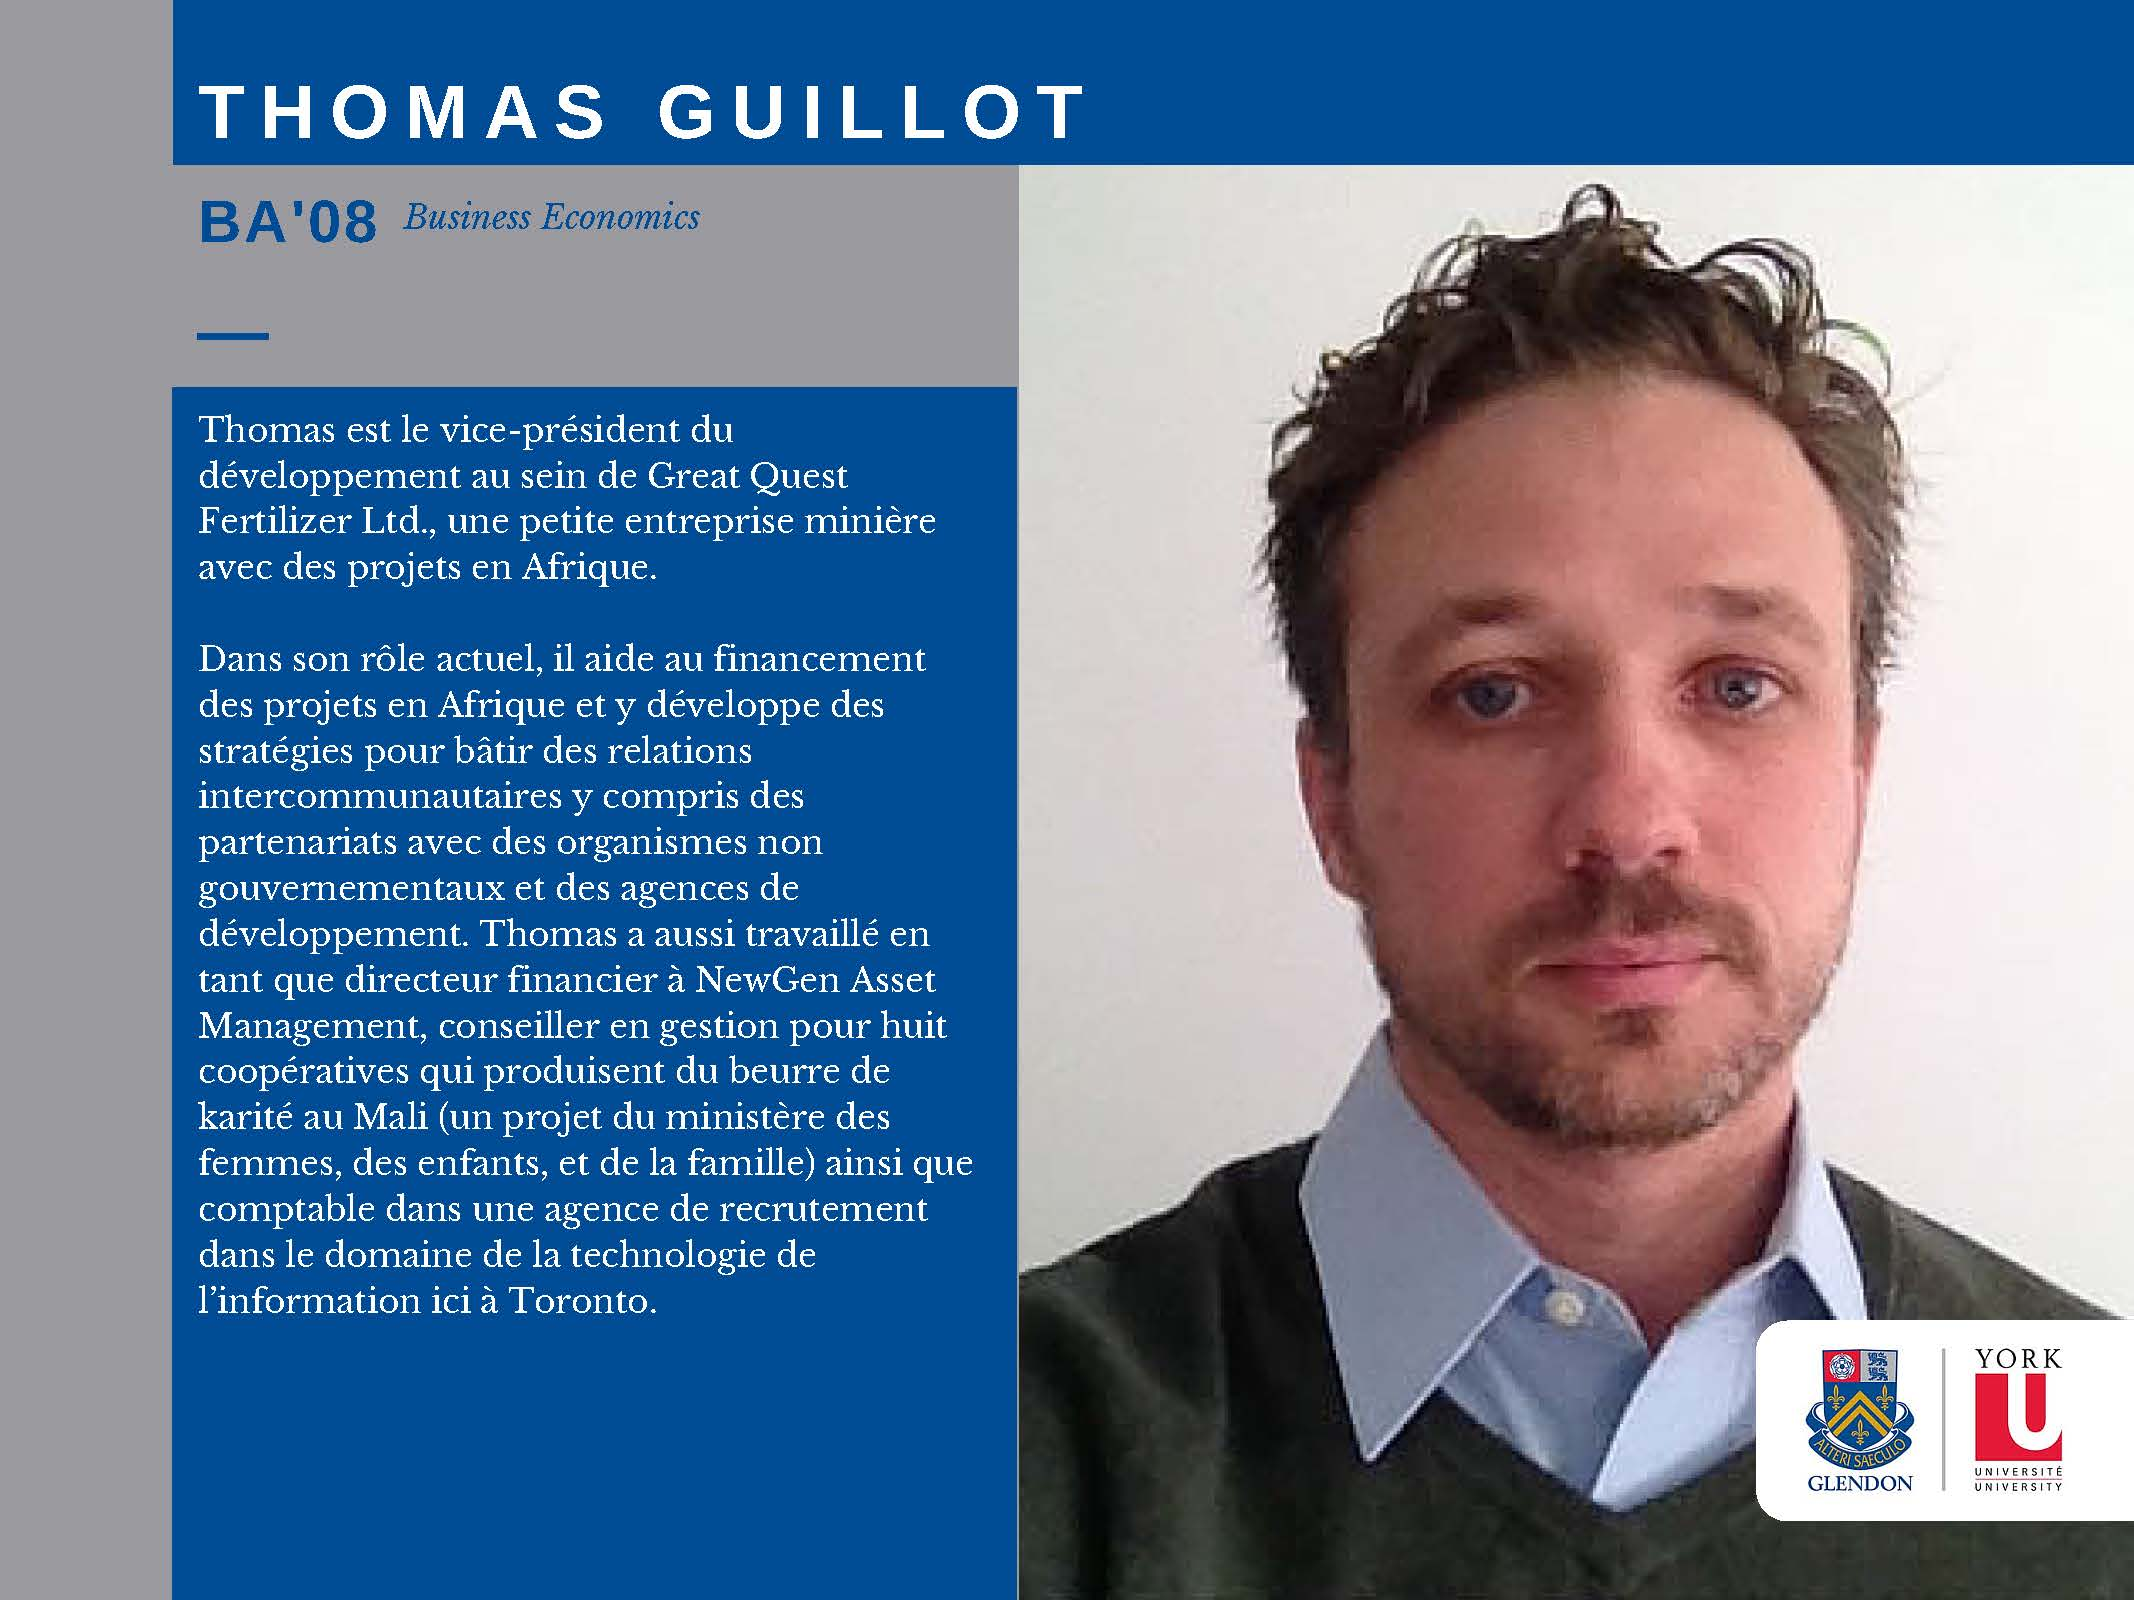 Thomas Guillot FR